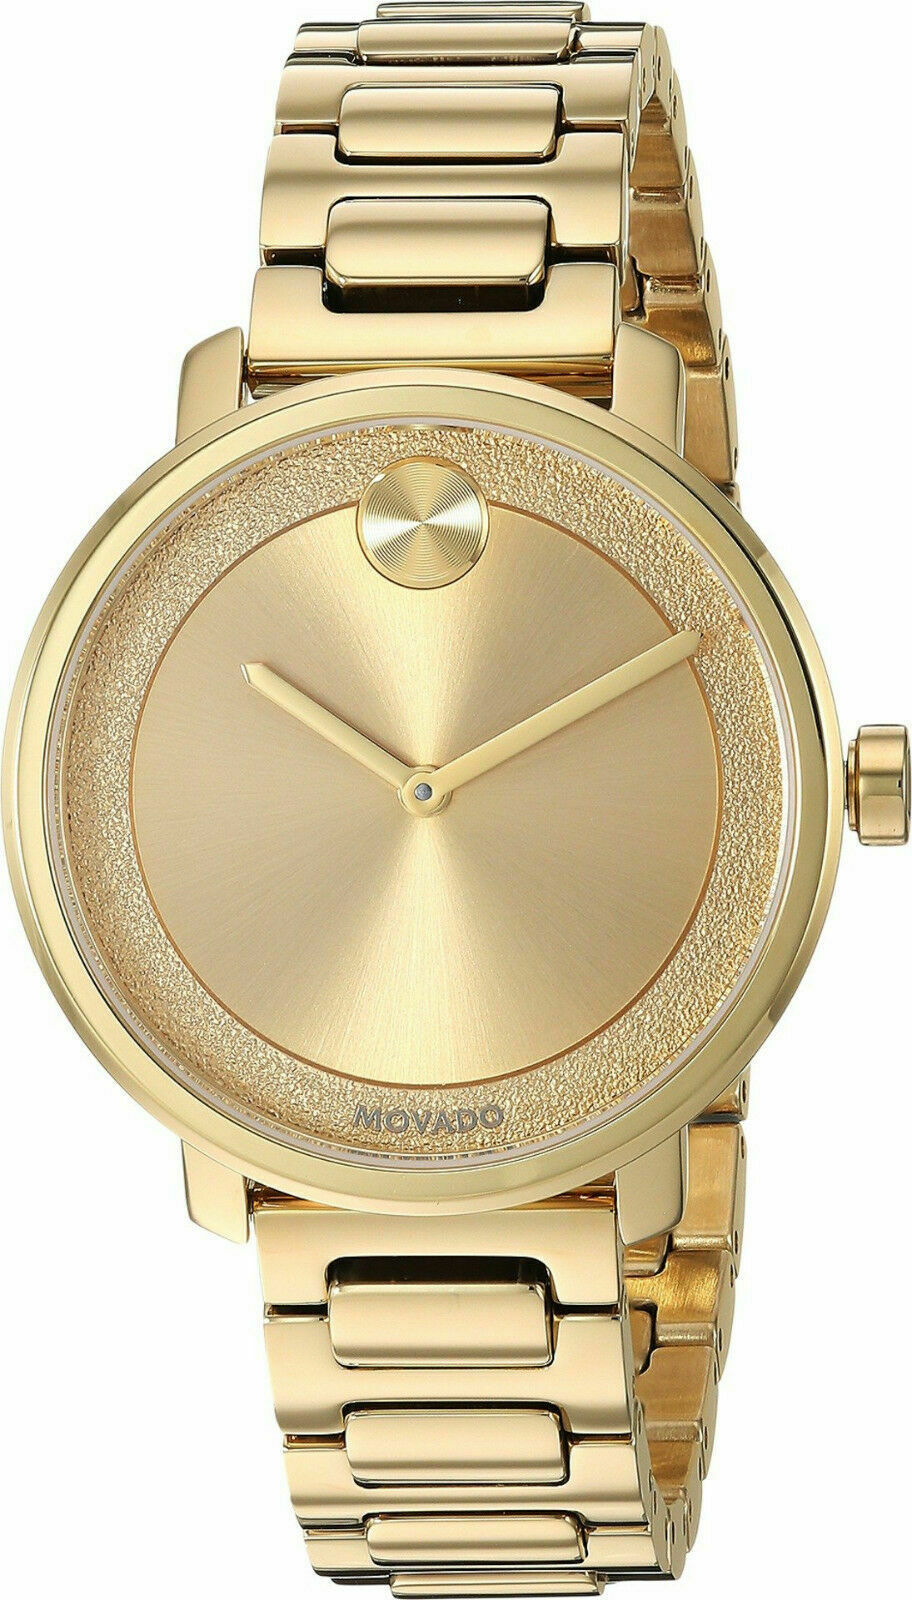 BRAND NEW MOVADO BOLD 3600502 GOLD TONE LADIES SUGAR DIAL SWISS QUARTZ WATCH